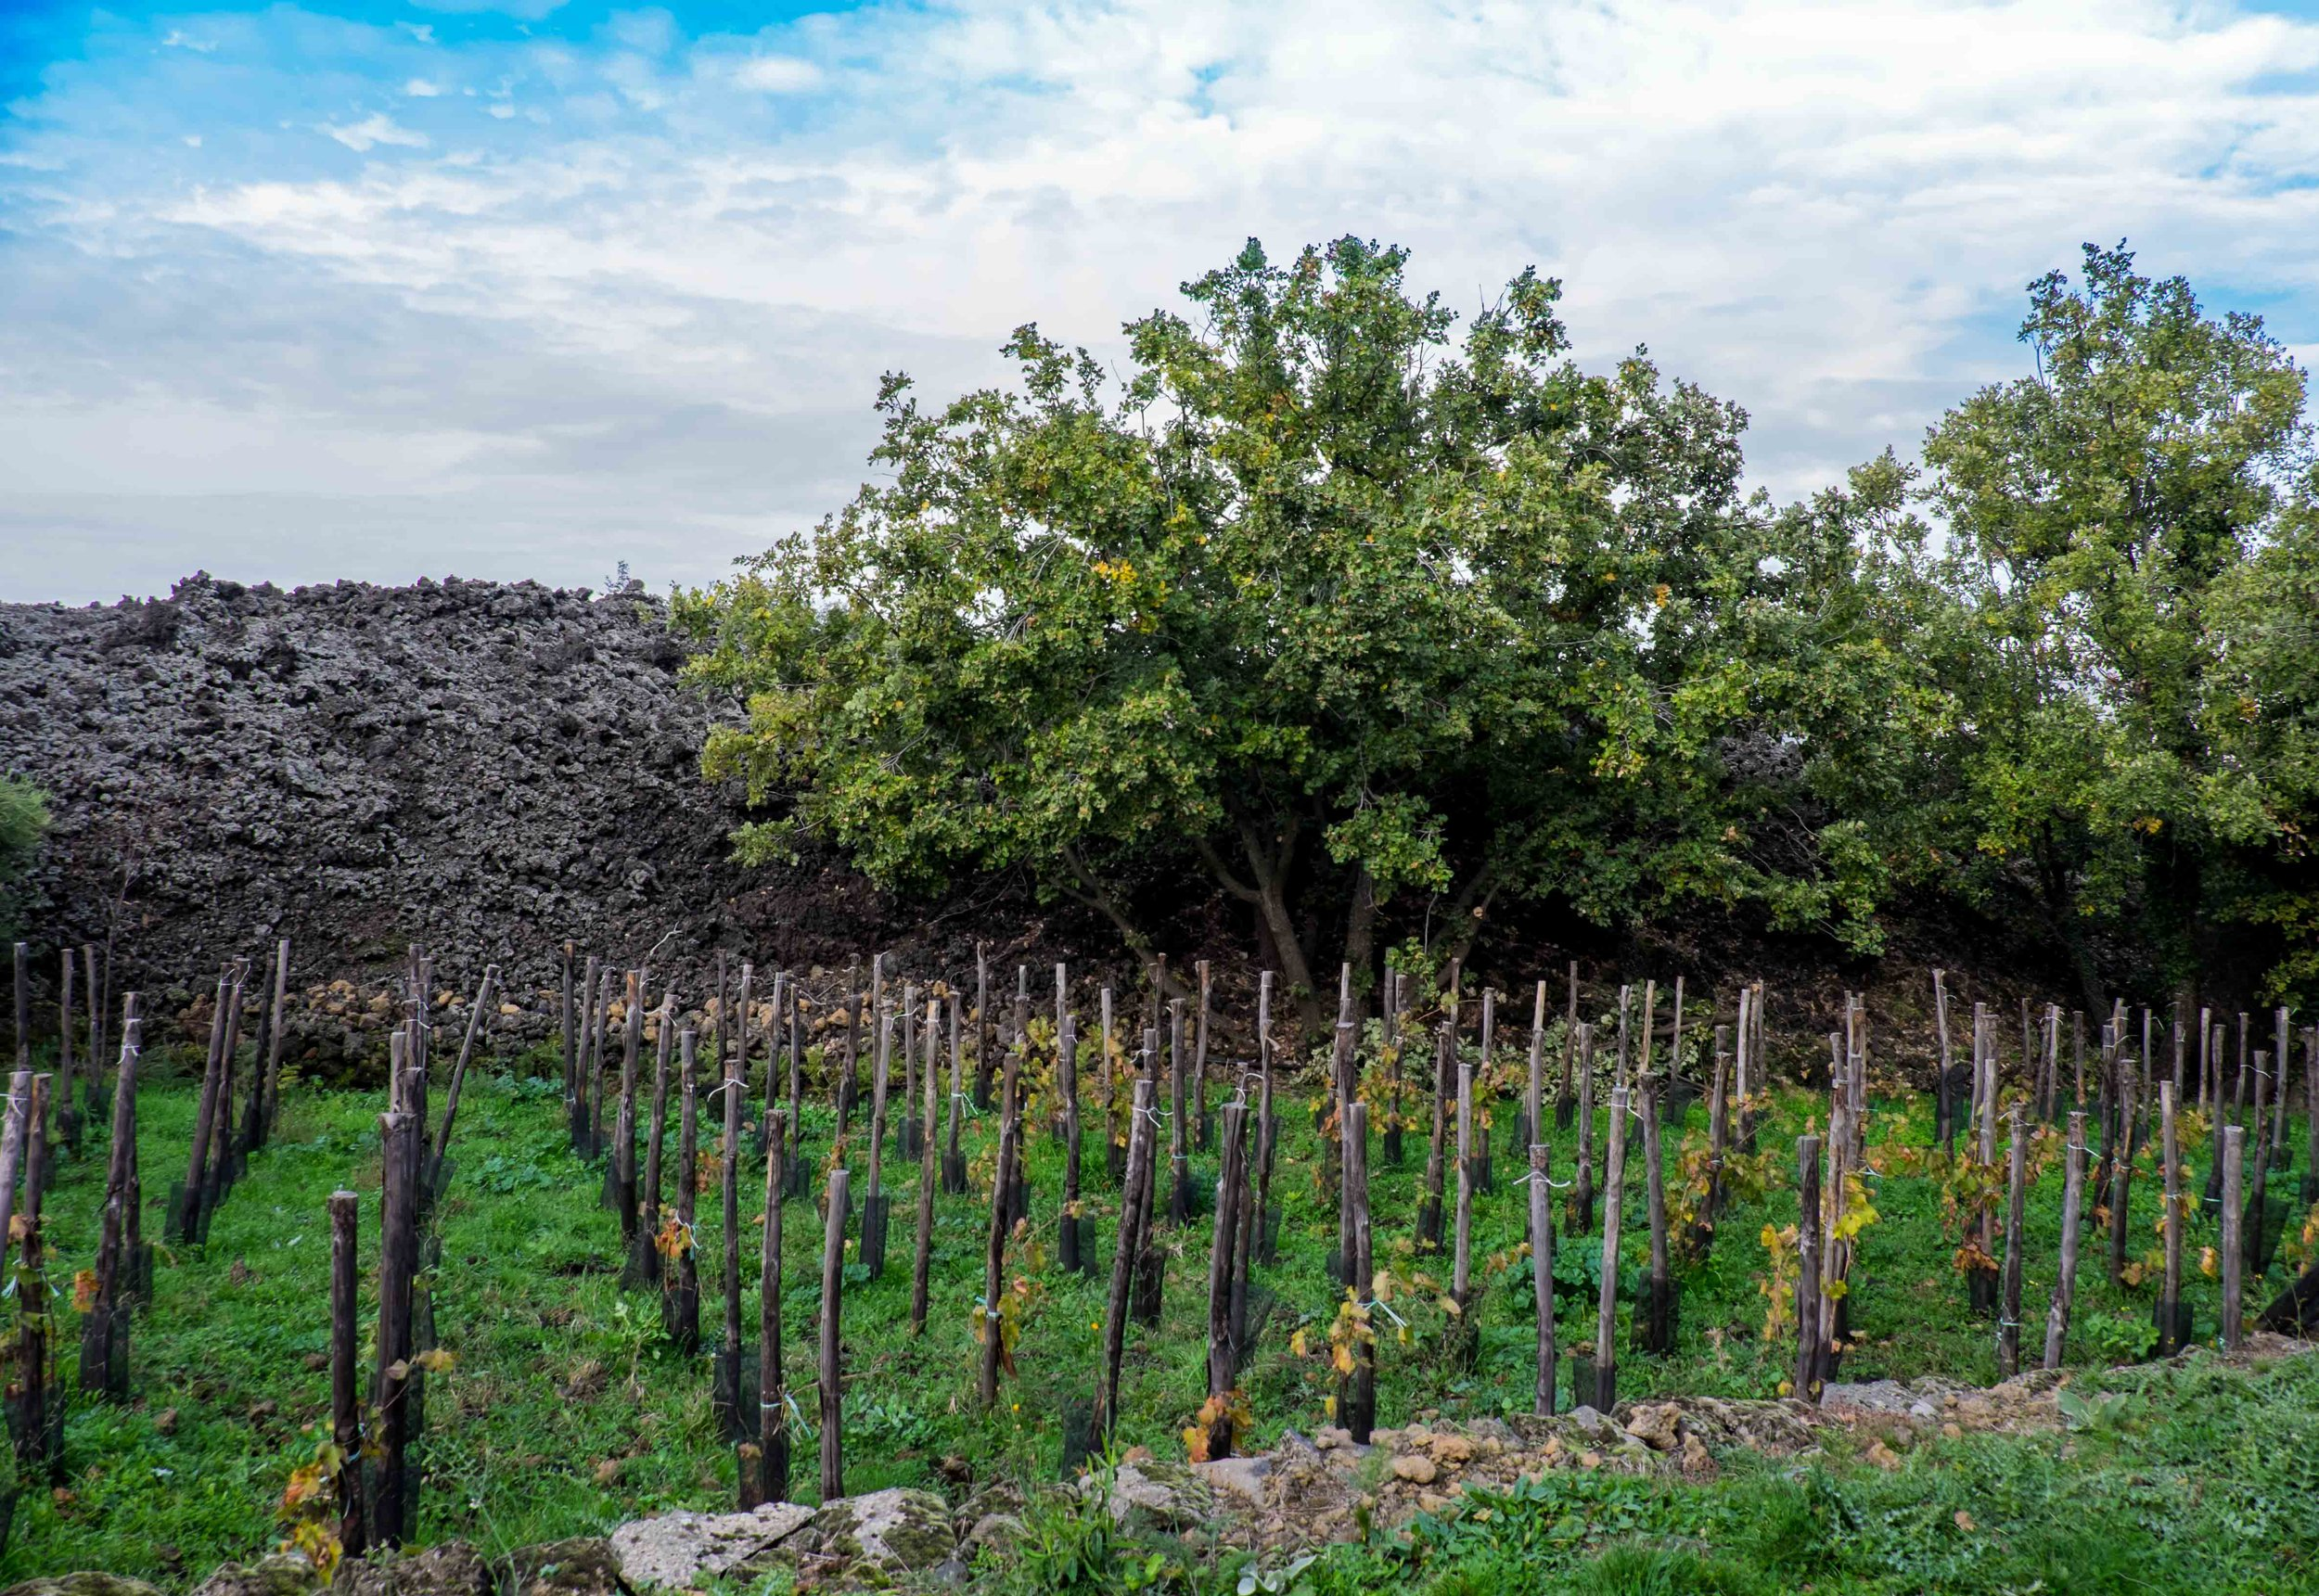 Vineyards spared by 1981 lava flow on Mt. Etna |  ©John Szabo (published by Jacqui Small)